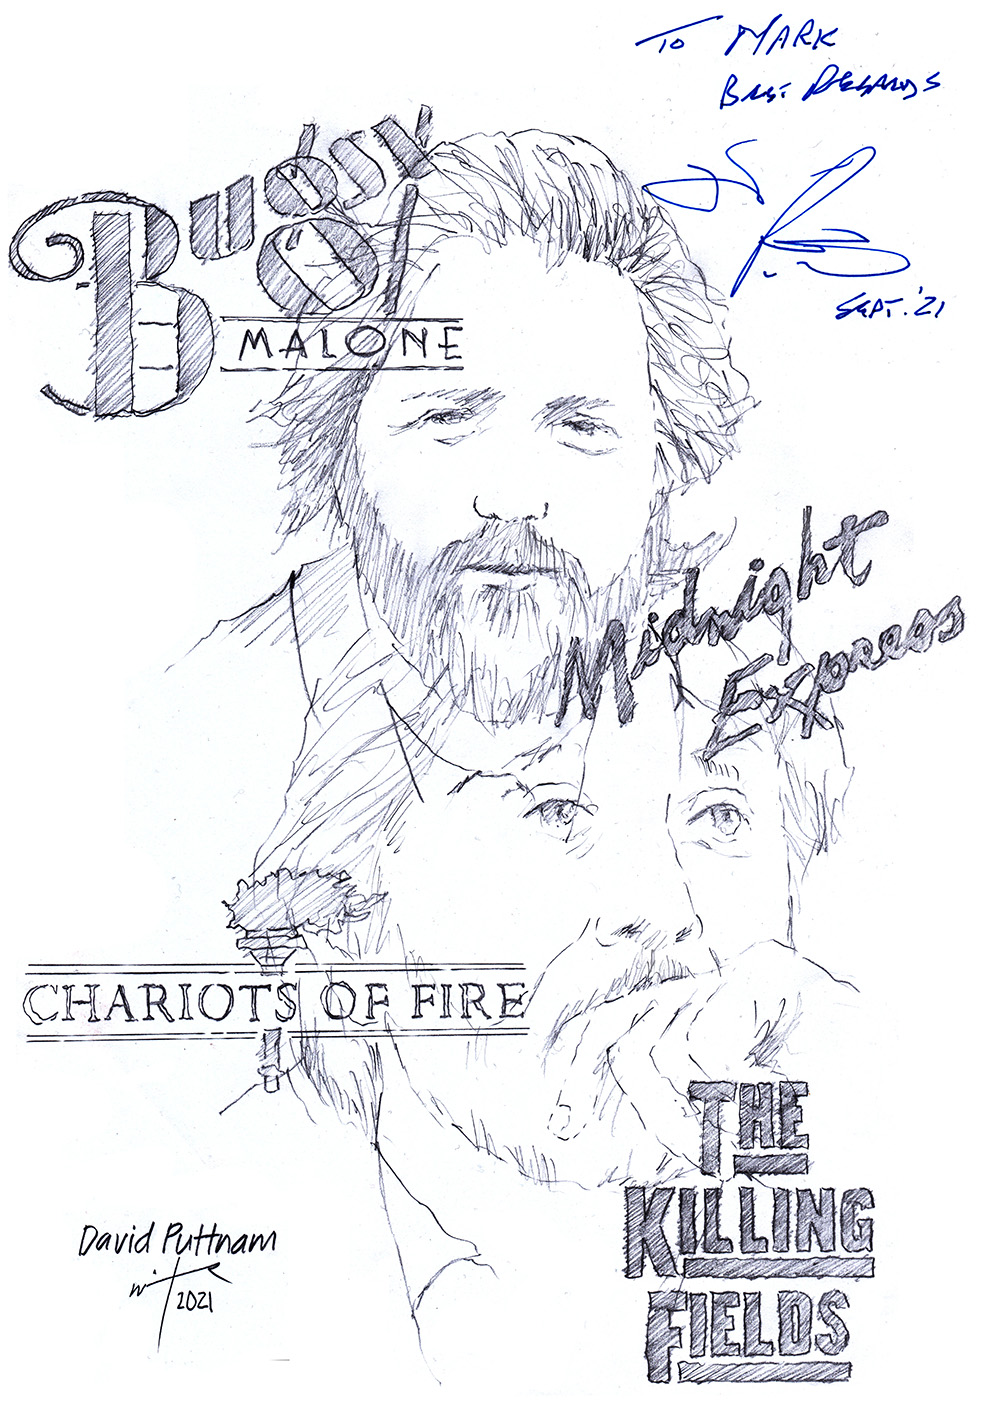 Autographed drawing of producer David Puttnam